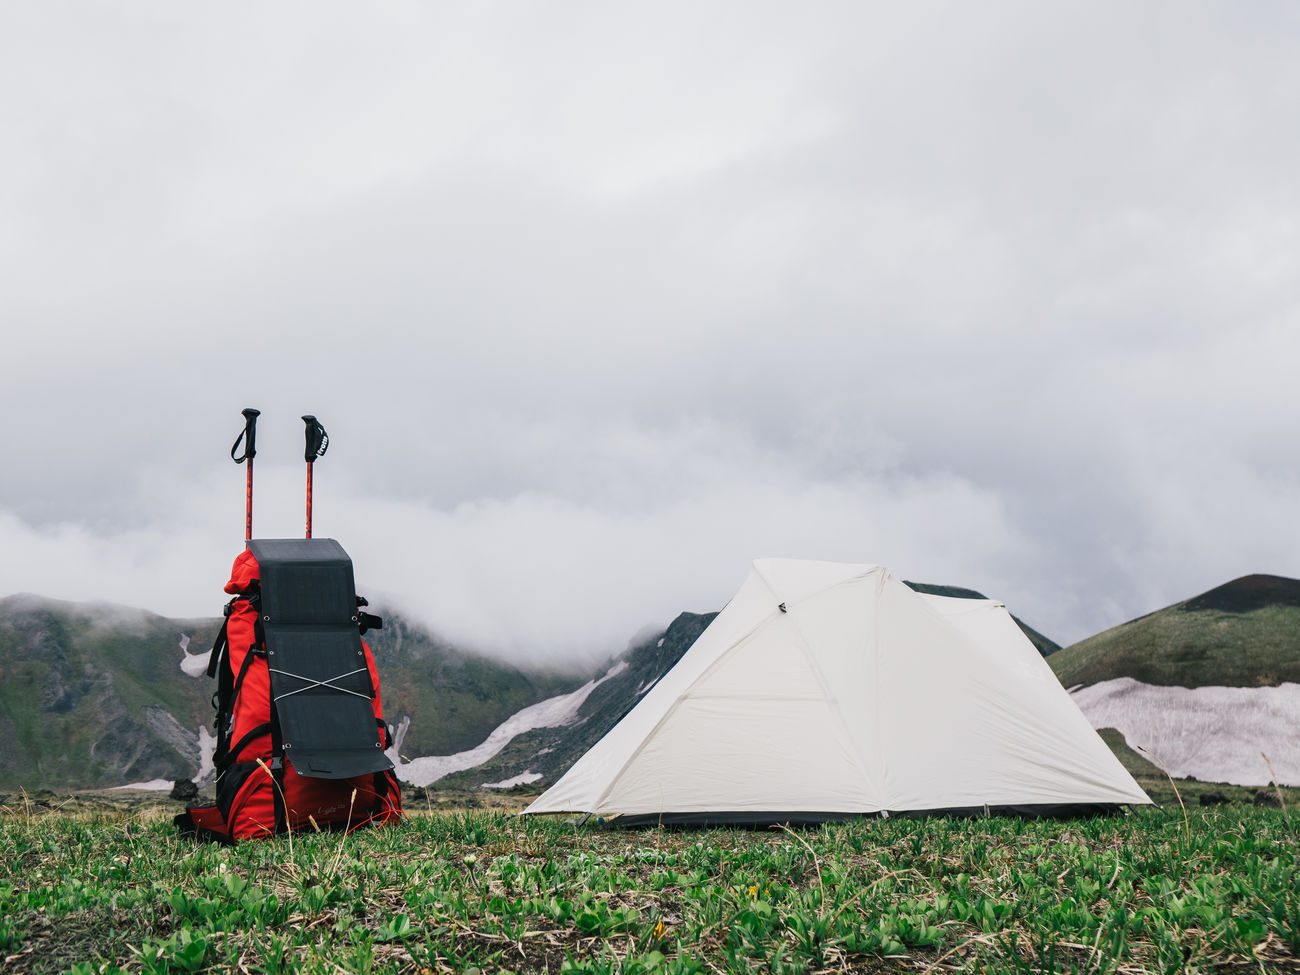 sky, adventure, tent, camping, day